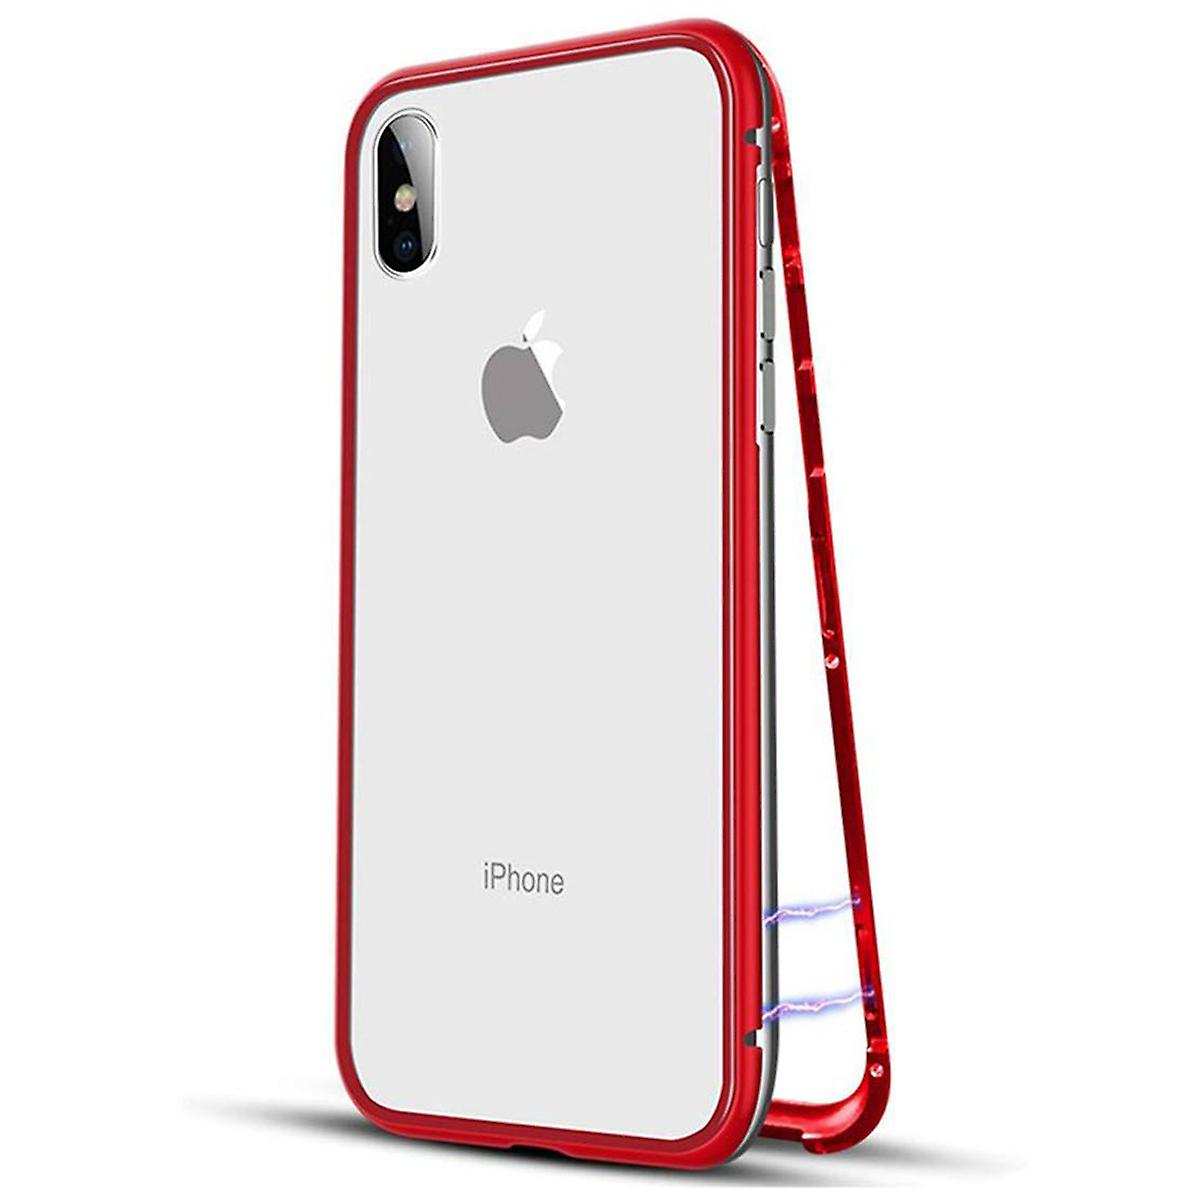 Magnetic Adsorption iPhone 8 Case